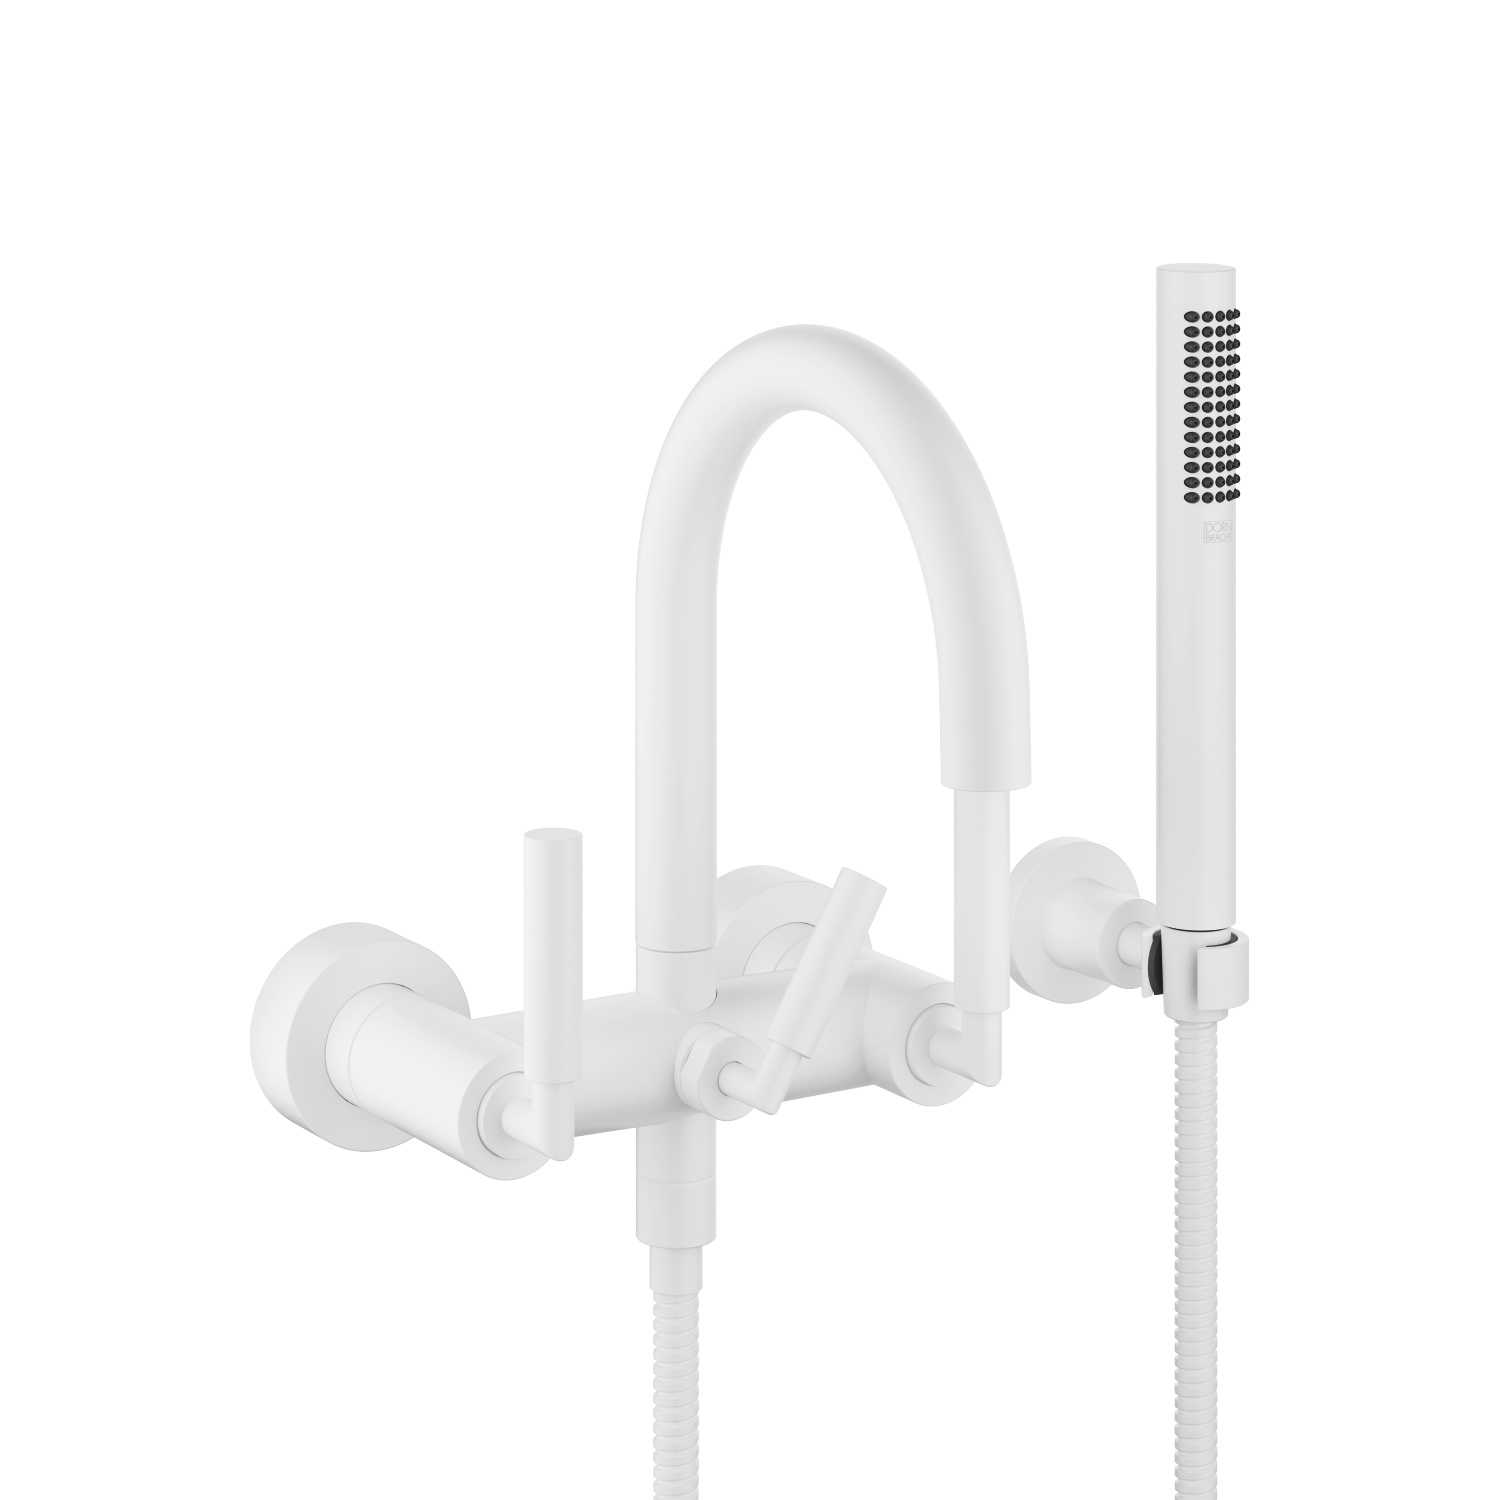 Bath mixer for wall mounting with hand shower set - matt white